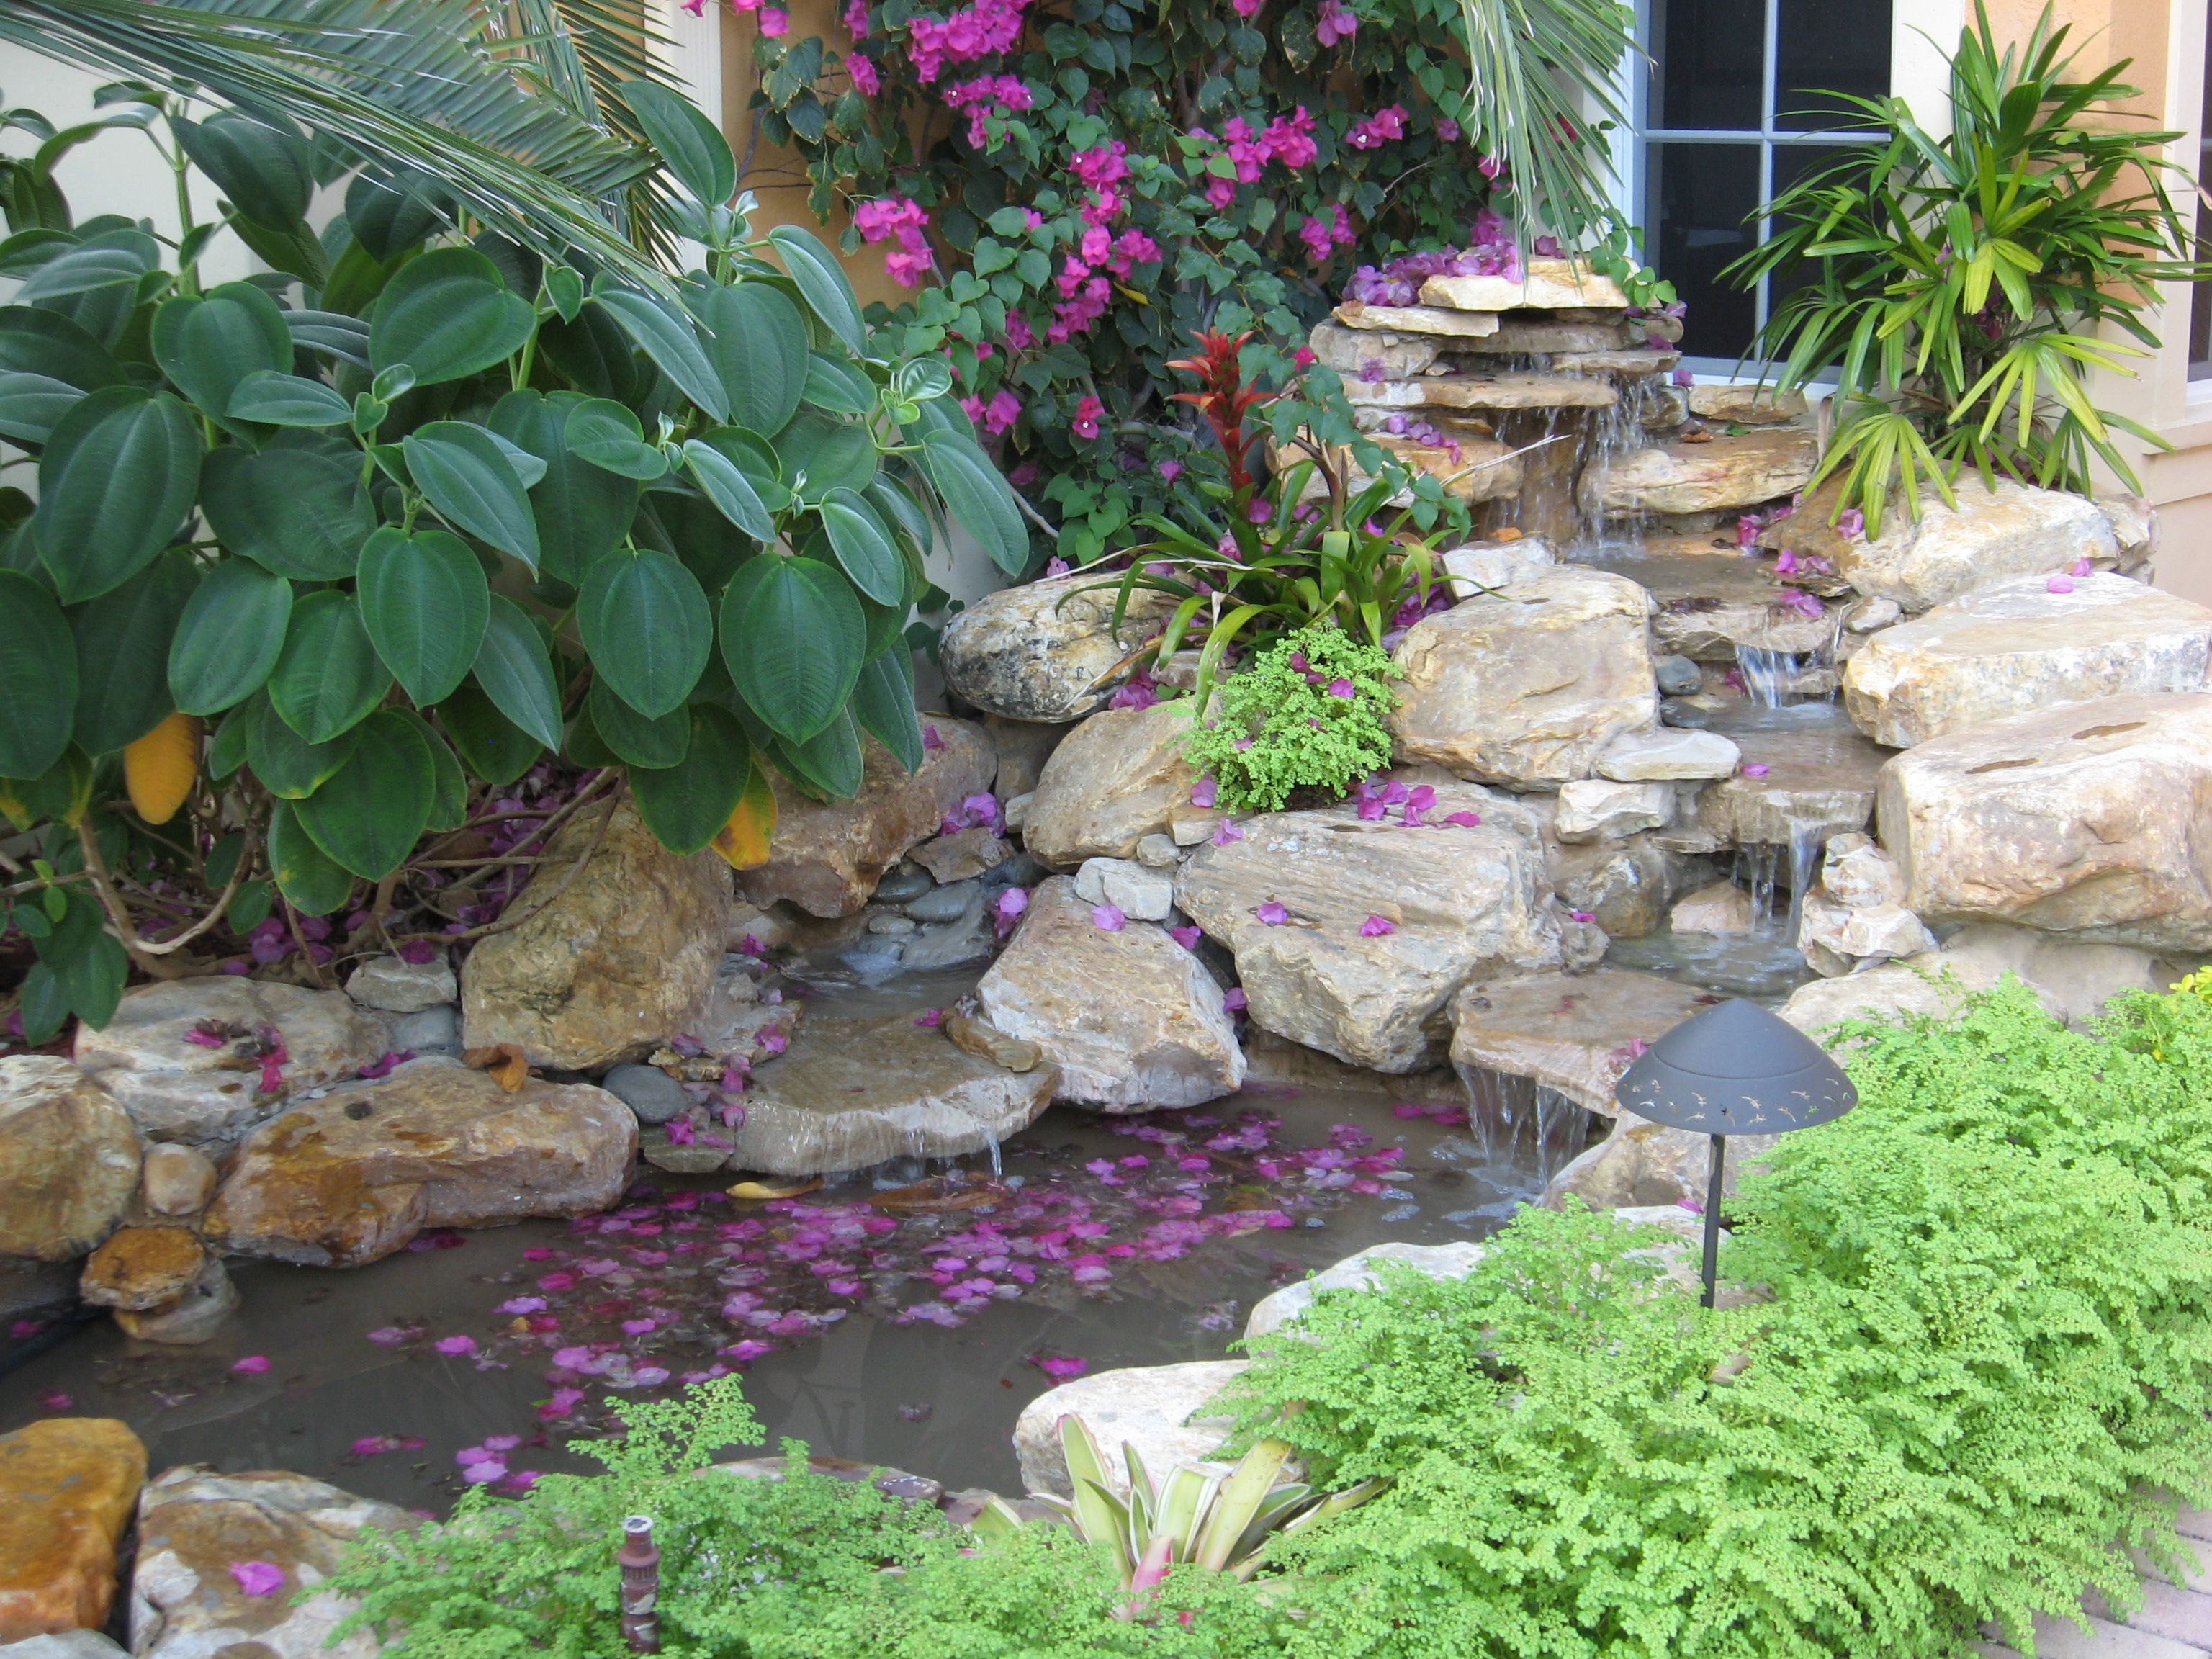 waterfall and pond in front yard garden  florida tropical garden plants  by matthew giamp